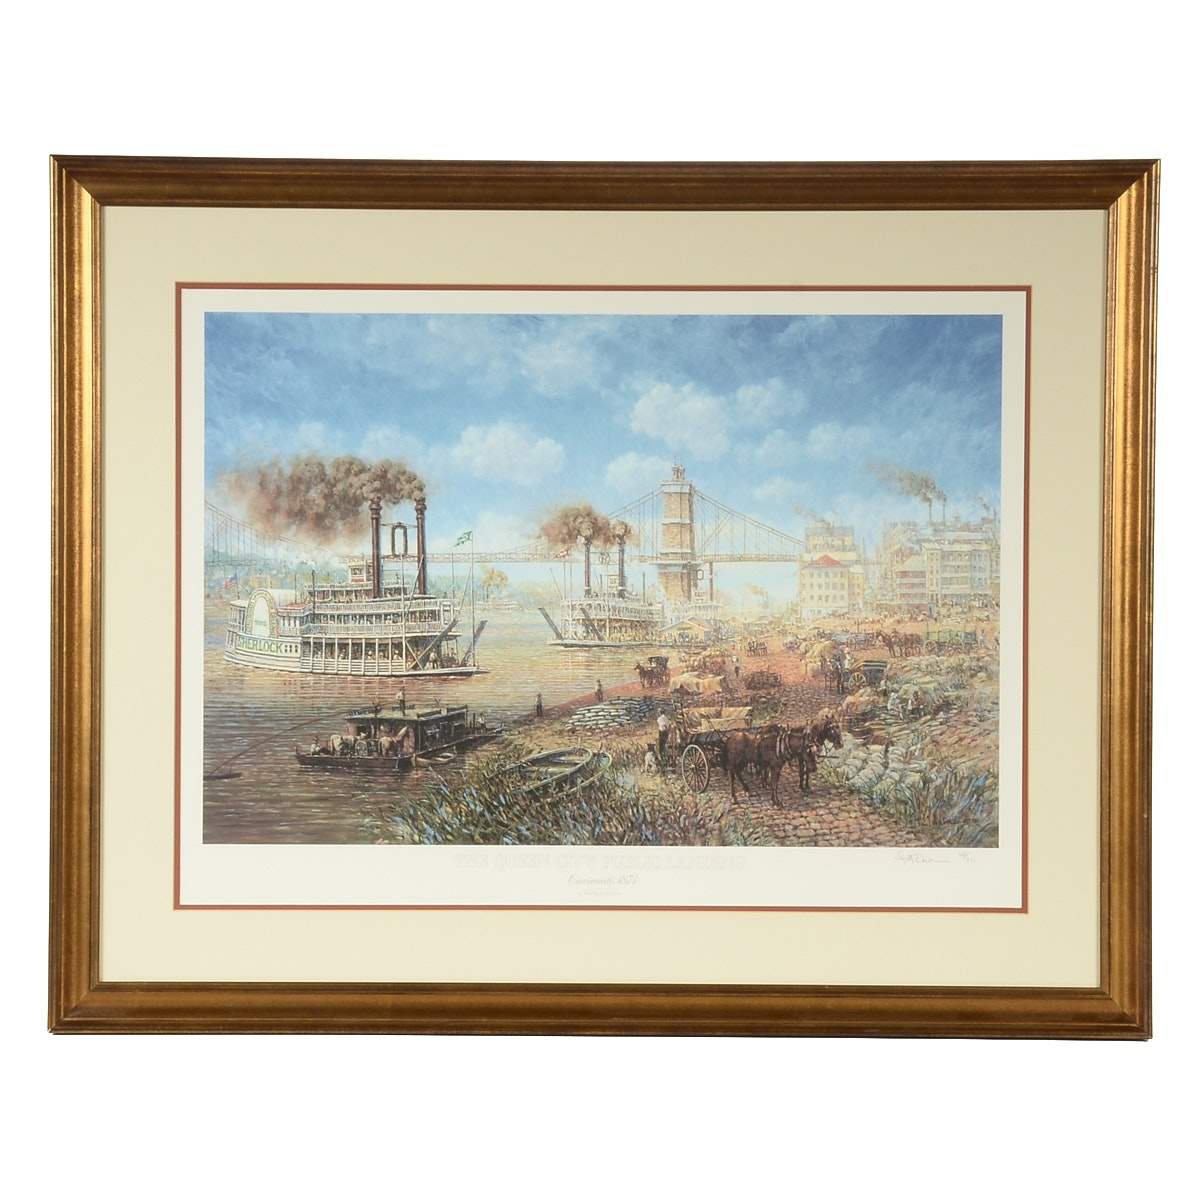 Frank McElwain Limited Edition Offset Lithograph